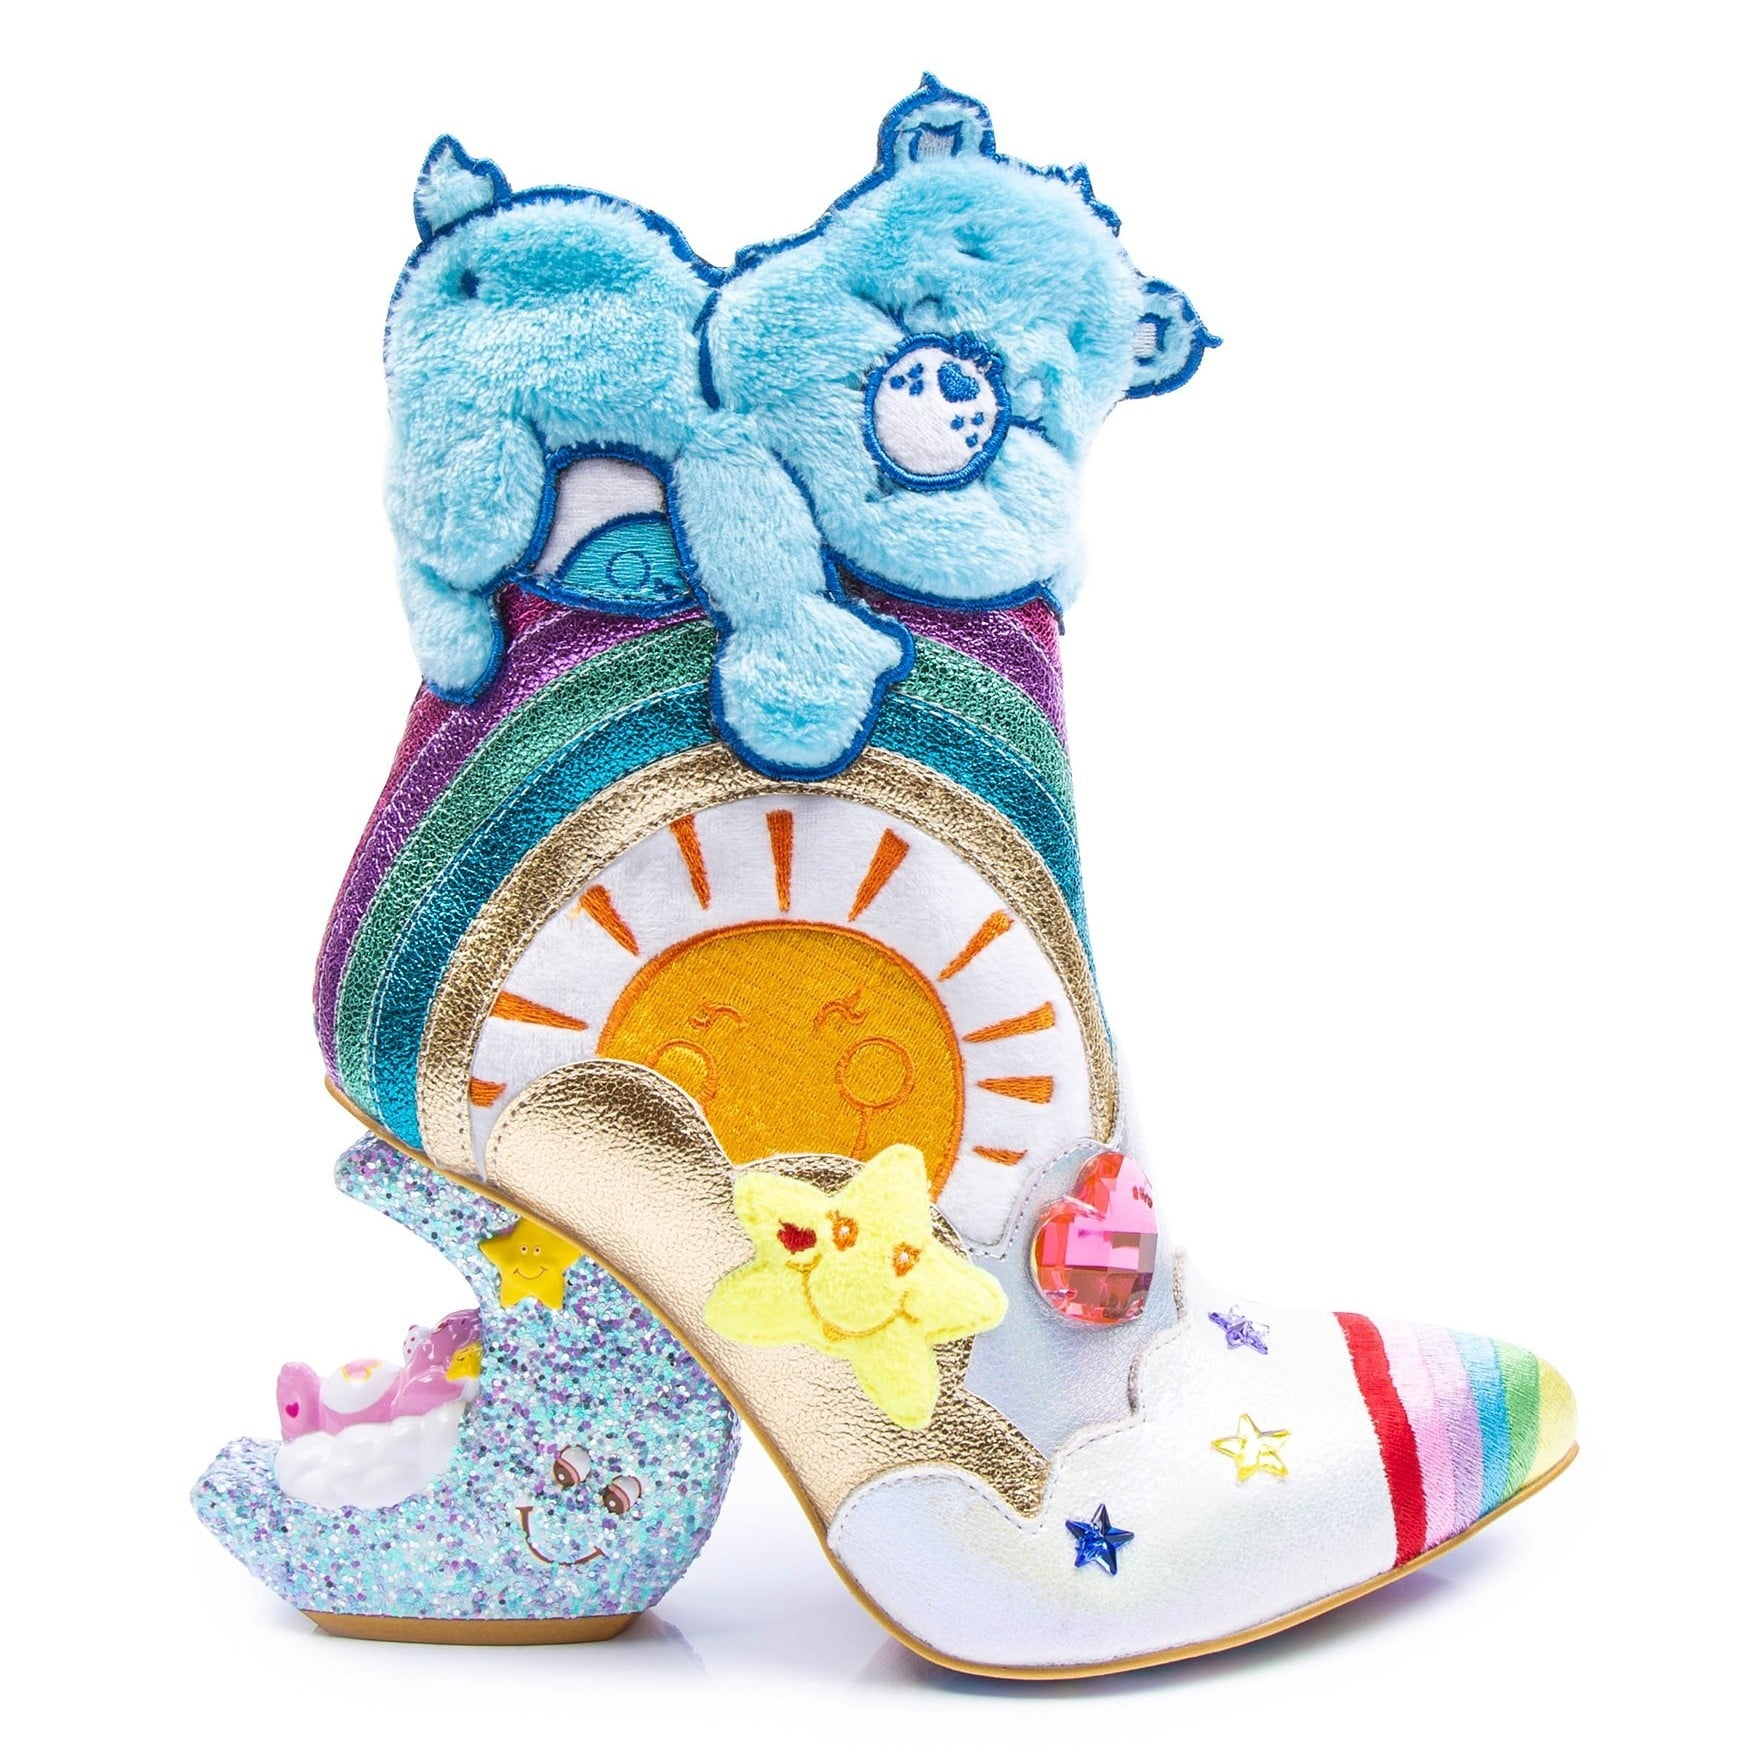 Irregular Choice Care Bears collection includes outrageous furry shoes 18